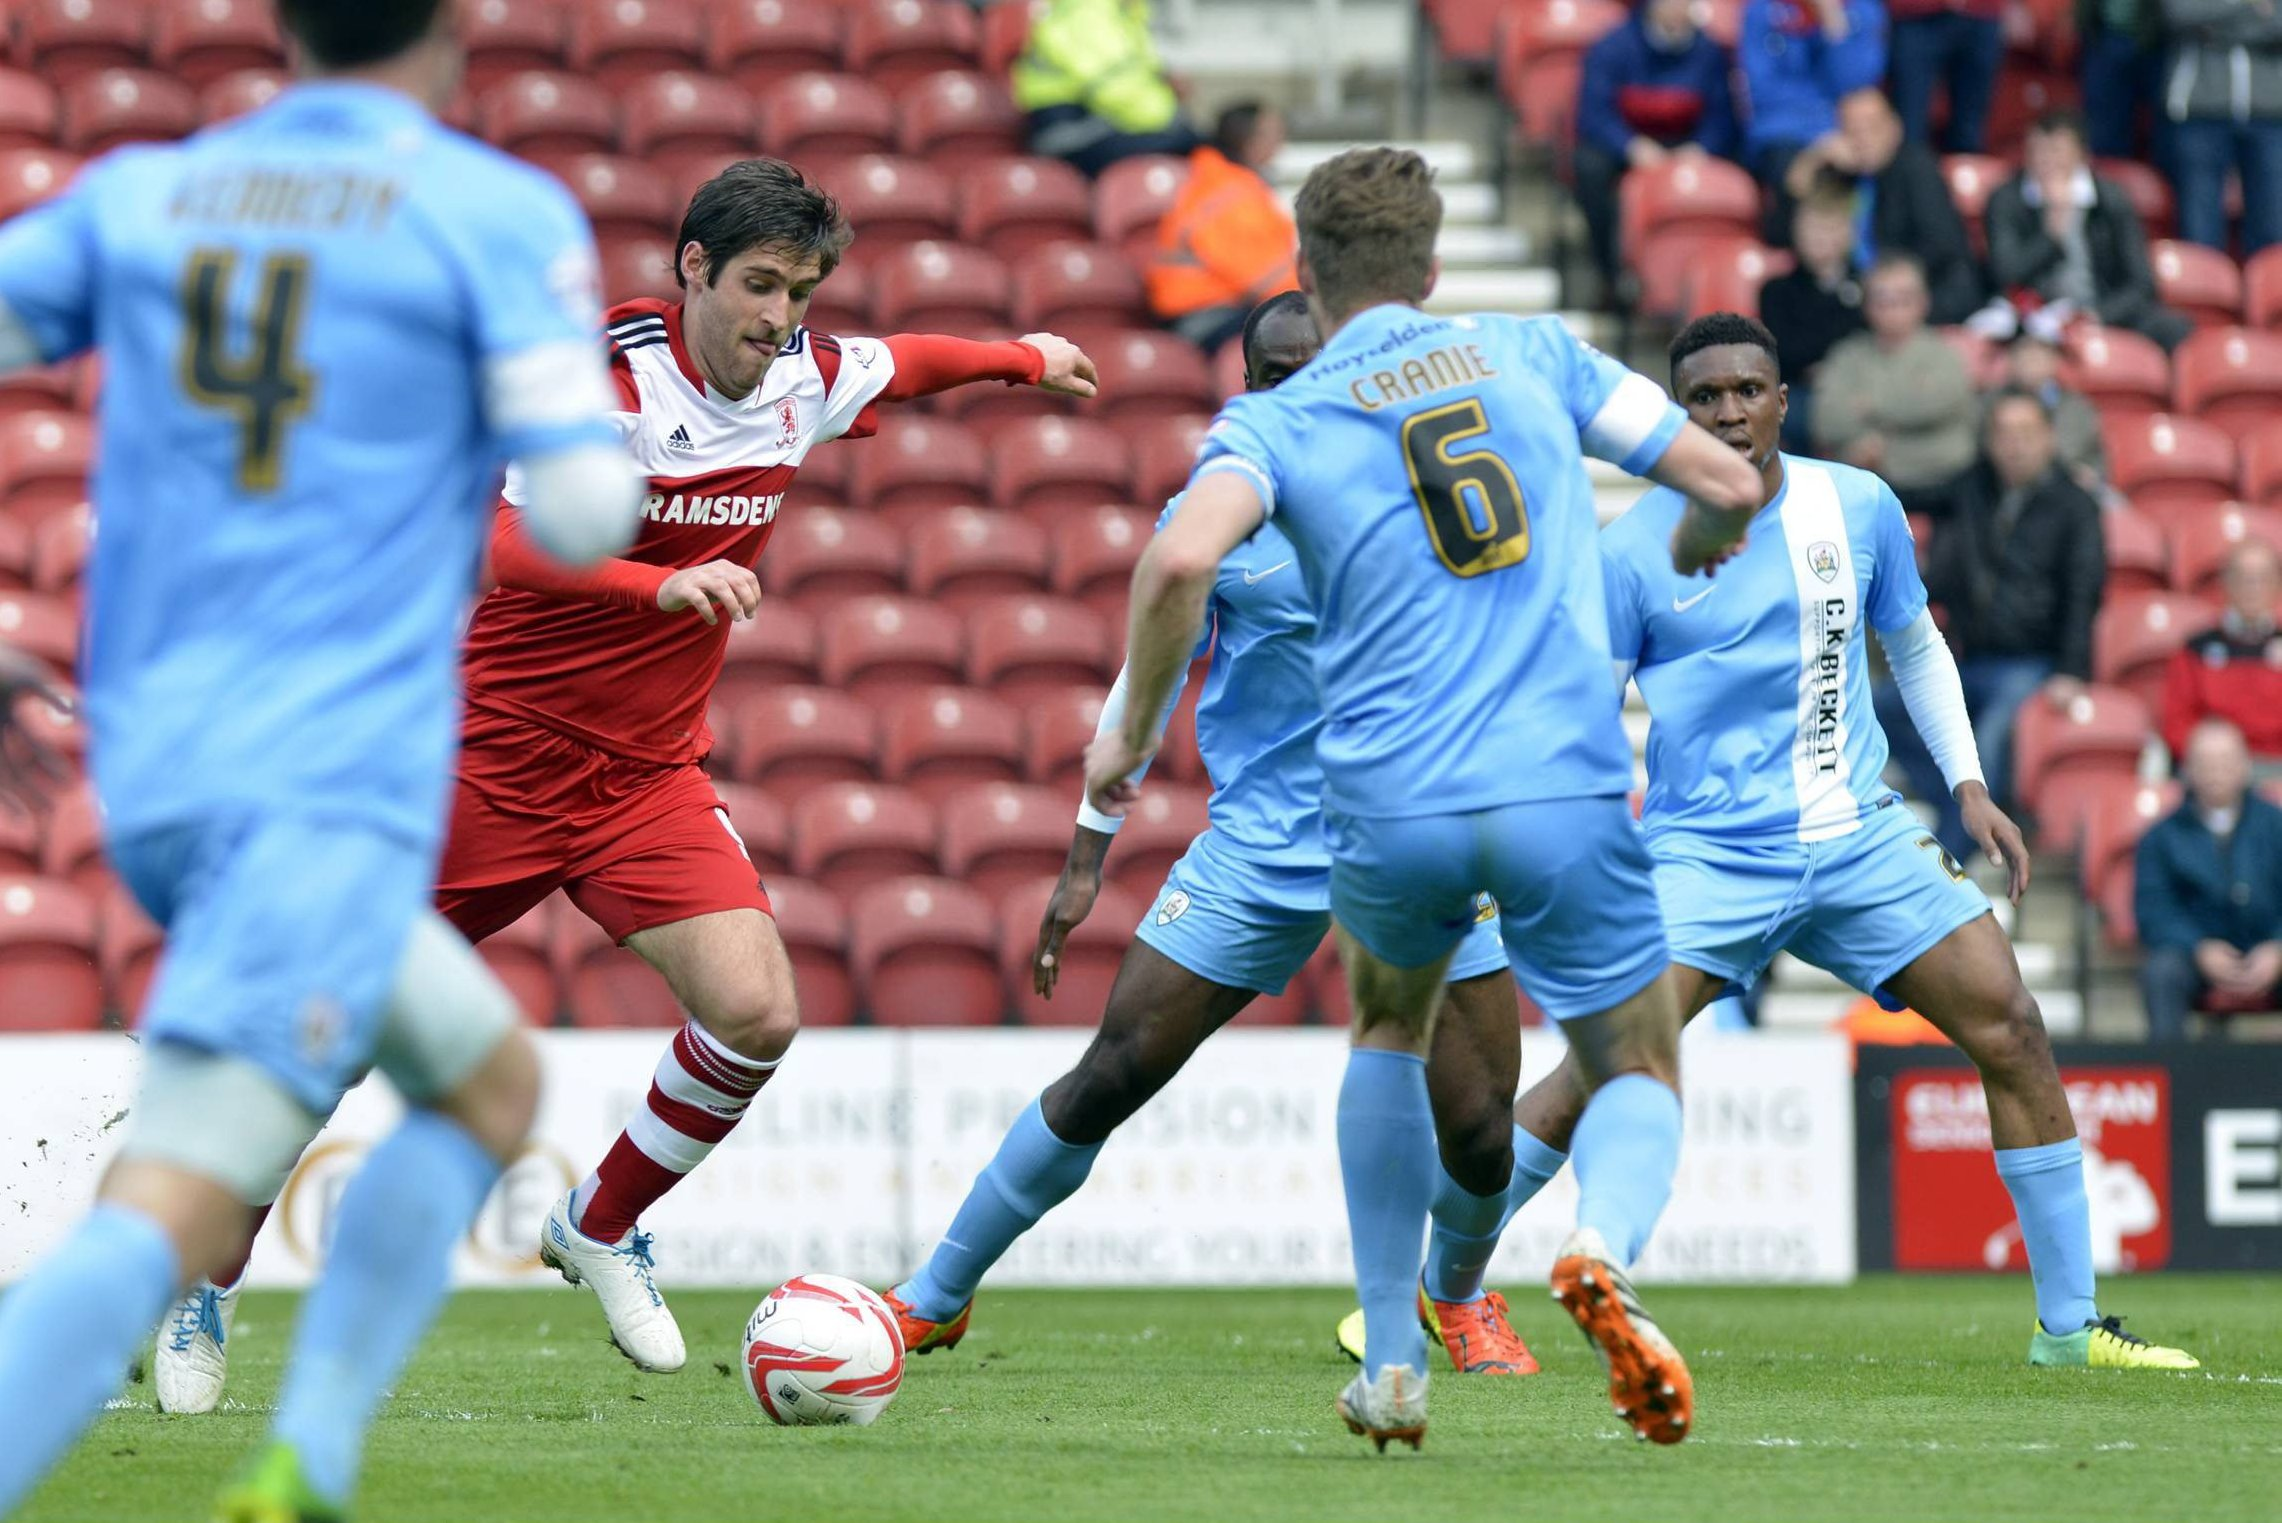 ON THE FRONT FOOT: On loan Middlesbrough striker Danny Graham, in action against Barnsley at the weekend